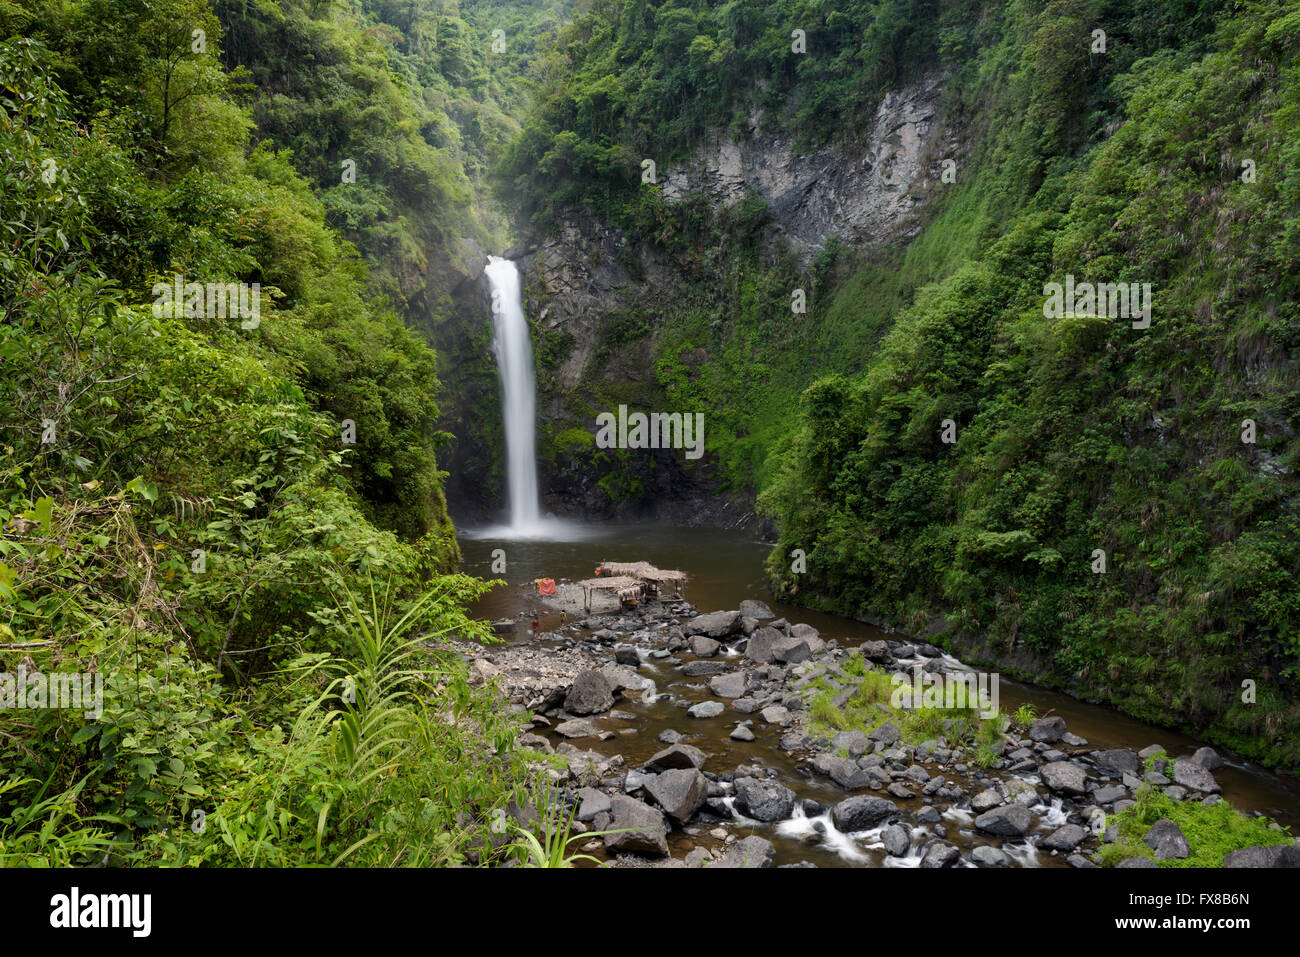 Tappia water falls near Batad rice terraces in Banaue - Philippines. - Stock Image